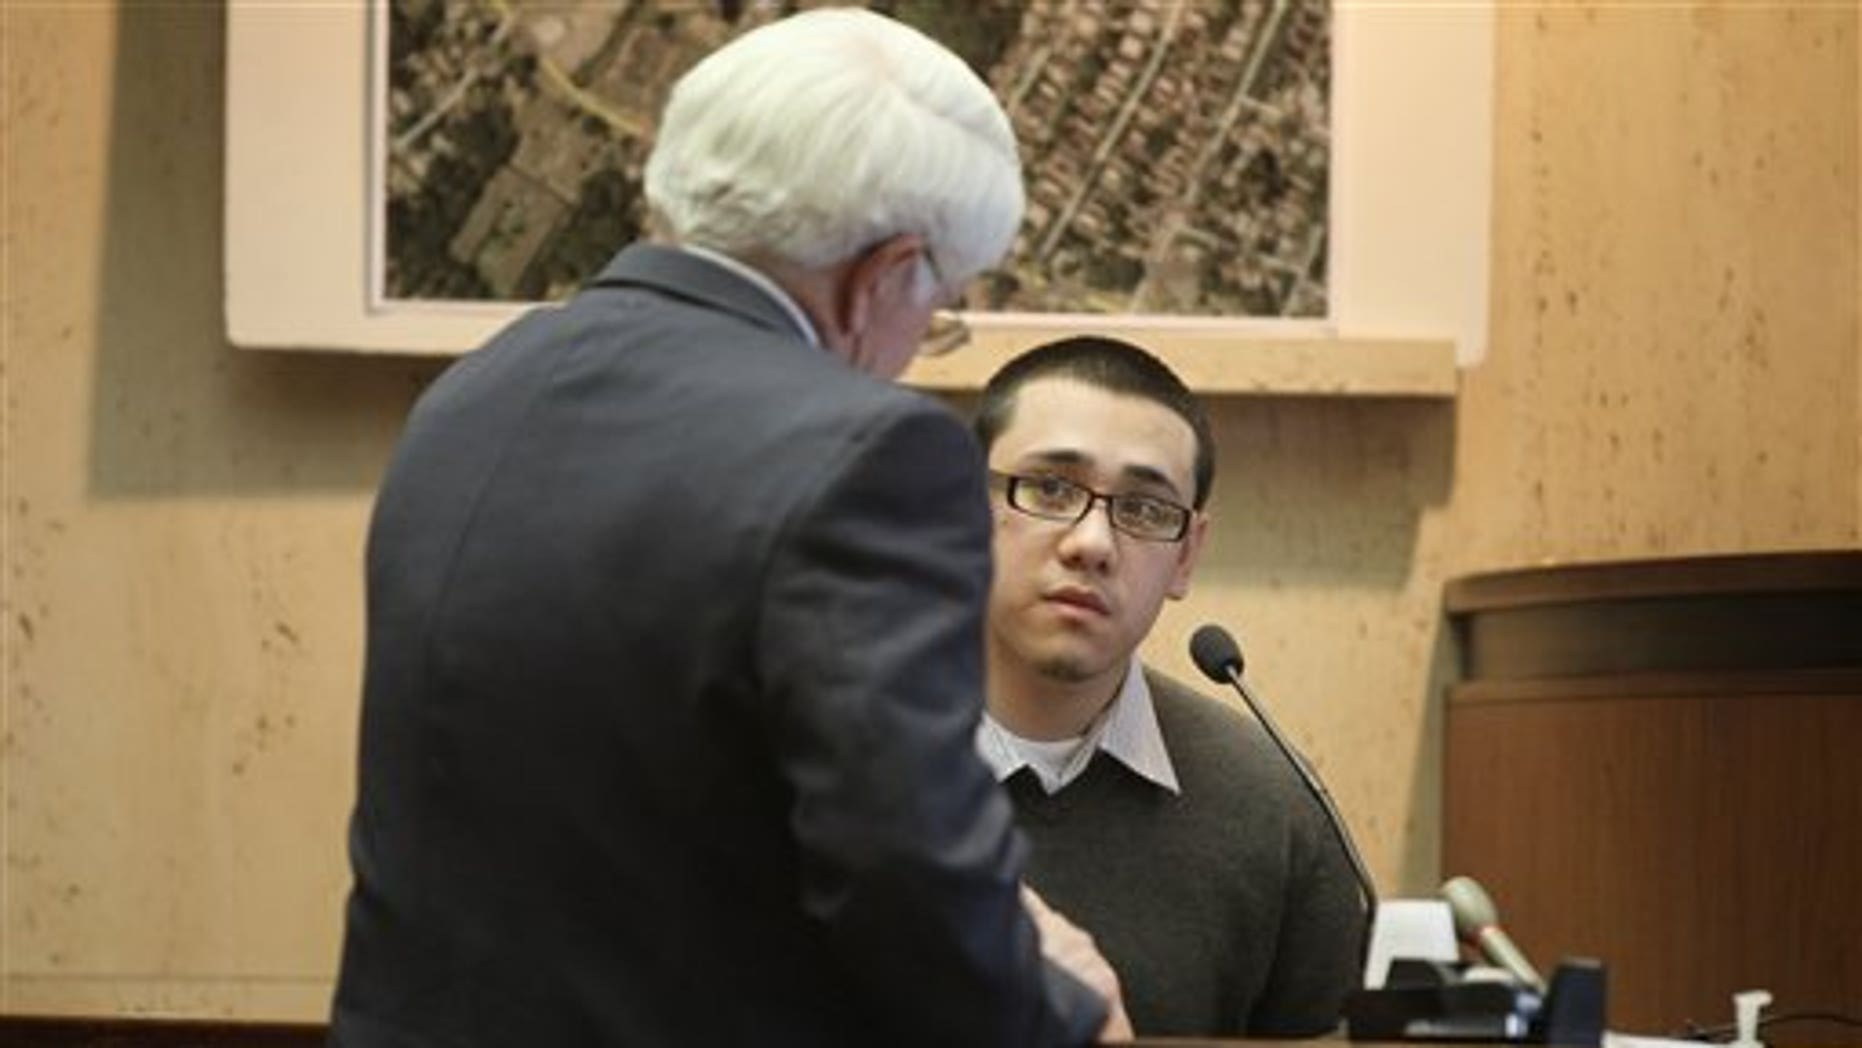 Alexander Alfaro being cross examined during his trial at the Essex County Courthouse in Newark, N.J., Monday, March 28, 2011.